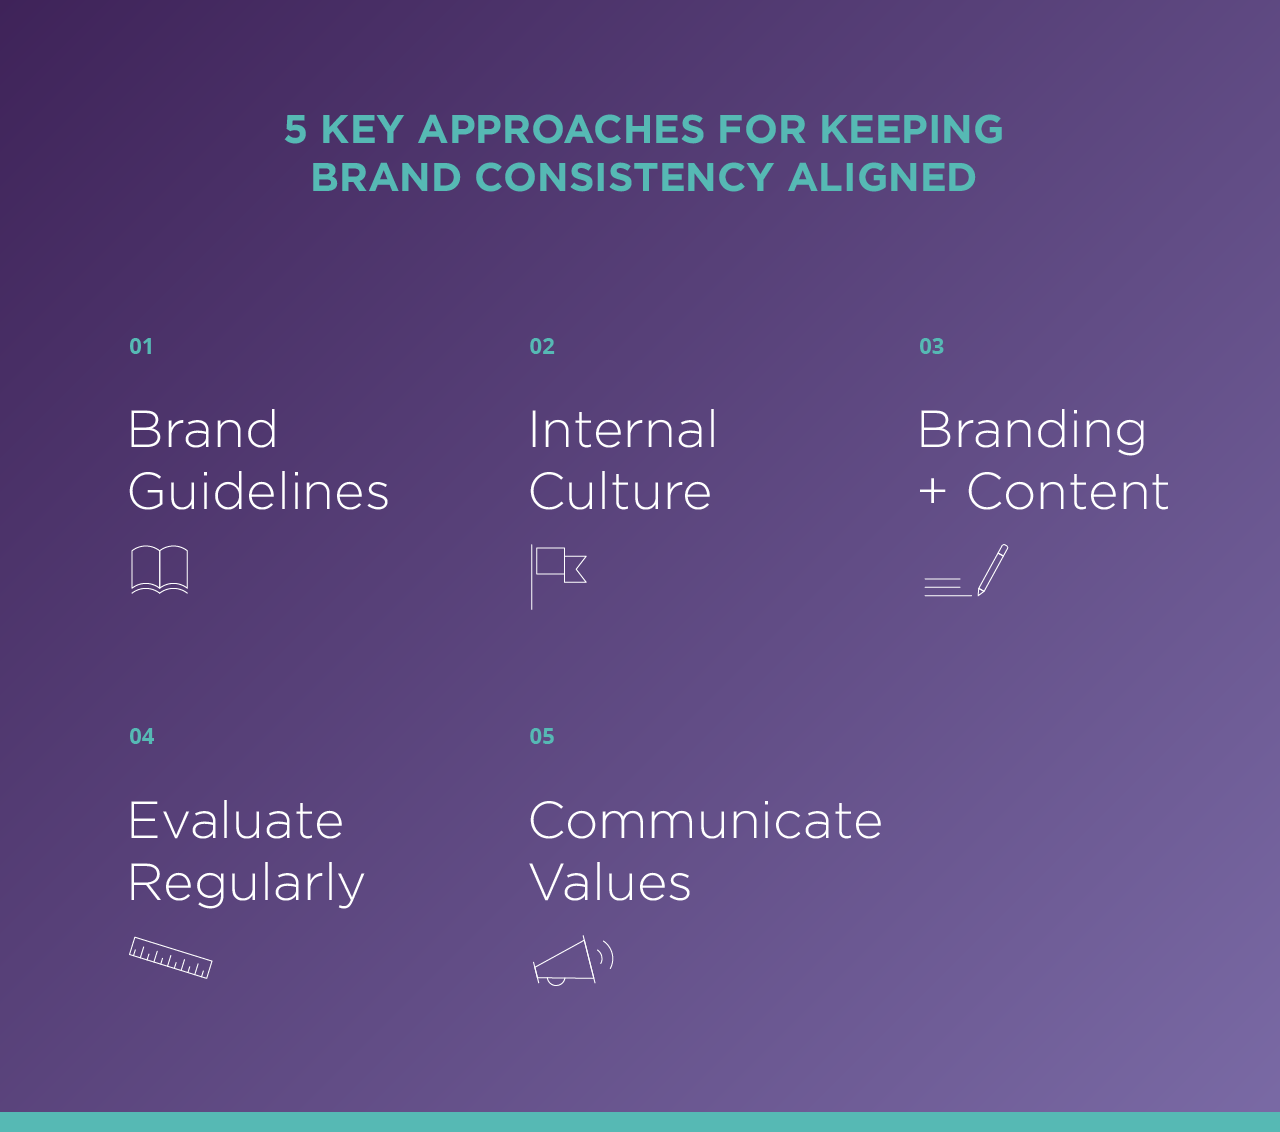 5 Key Approaches for Keeping Brand Consistency Aligned